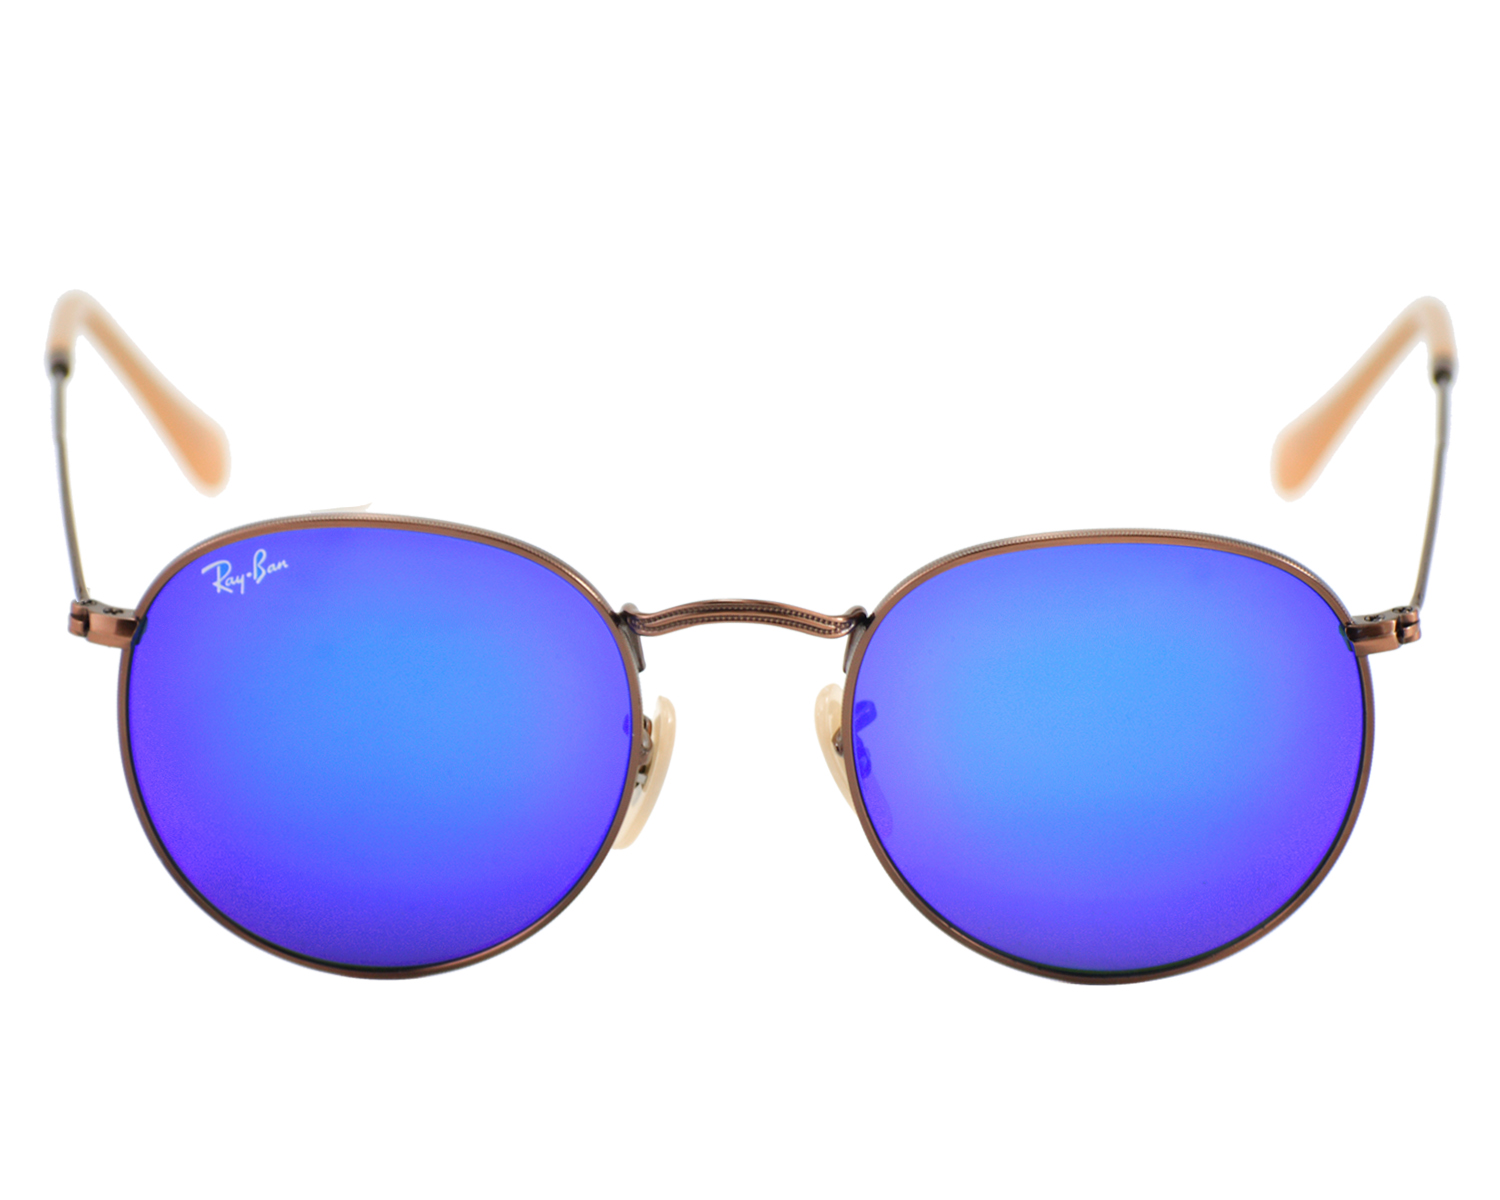 Ray-Ban RB3347 Round Flash Lenses 167/68 Bronze-Copper Frames/Blue ...